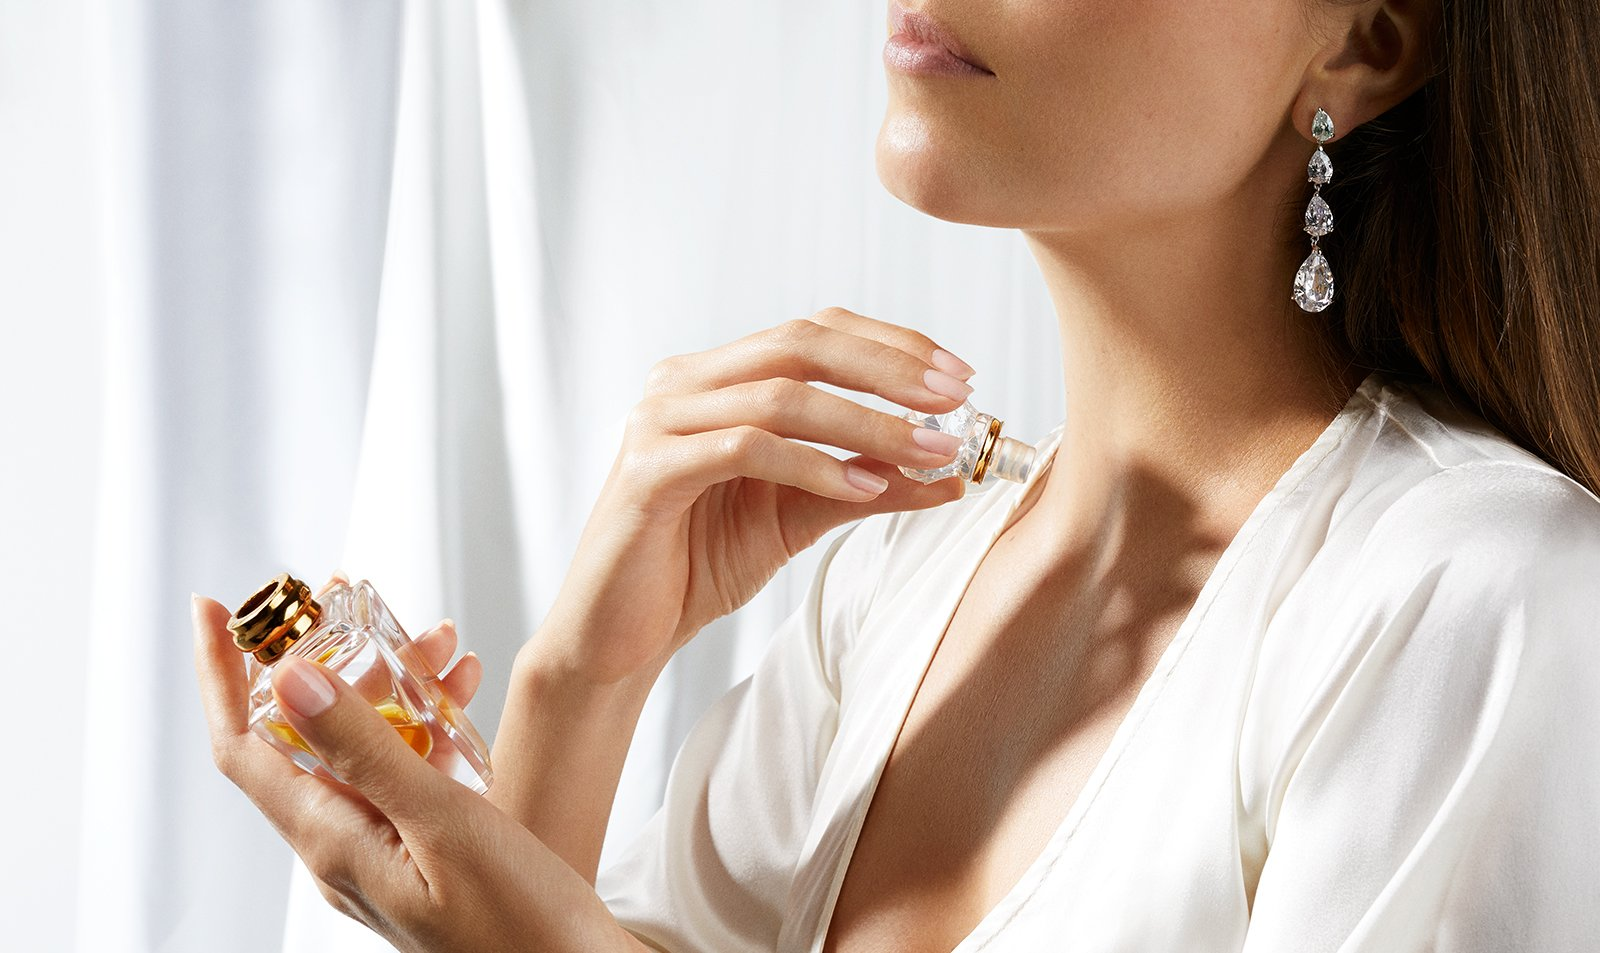 Image result for perfume on skin